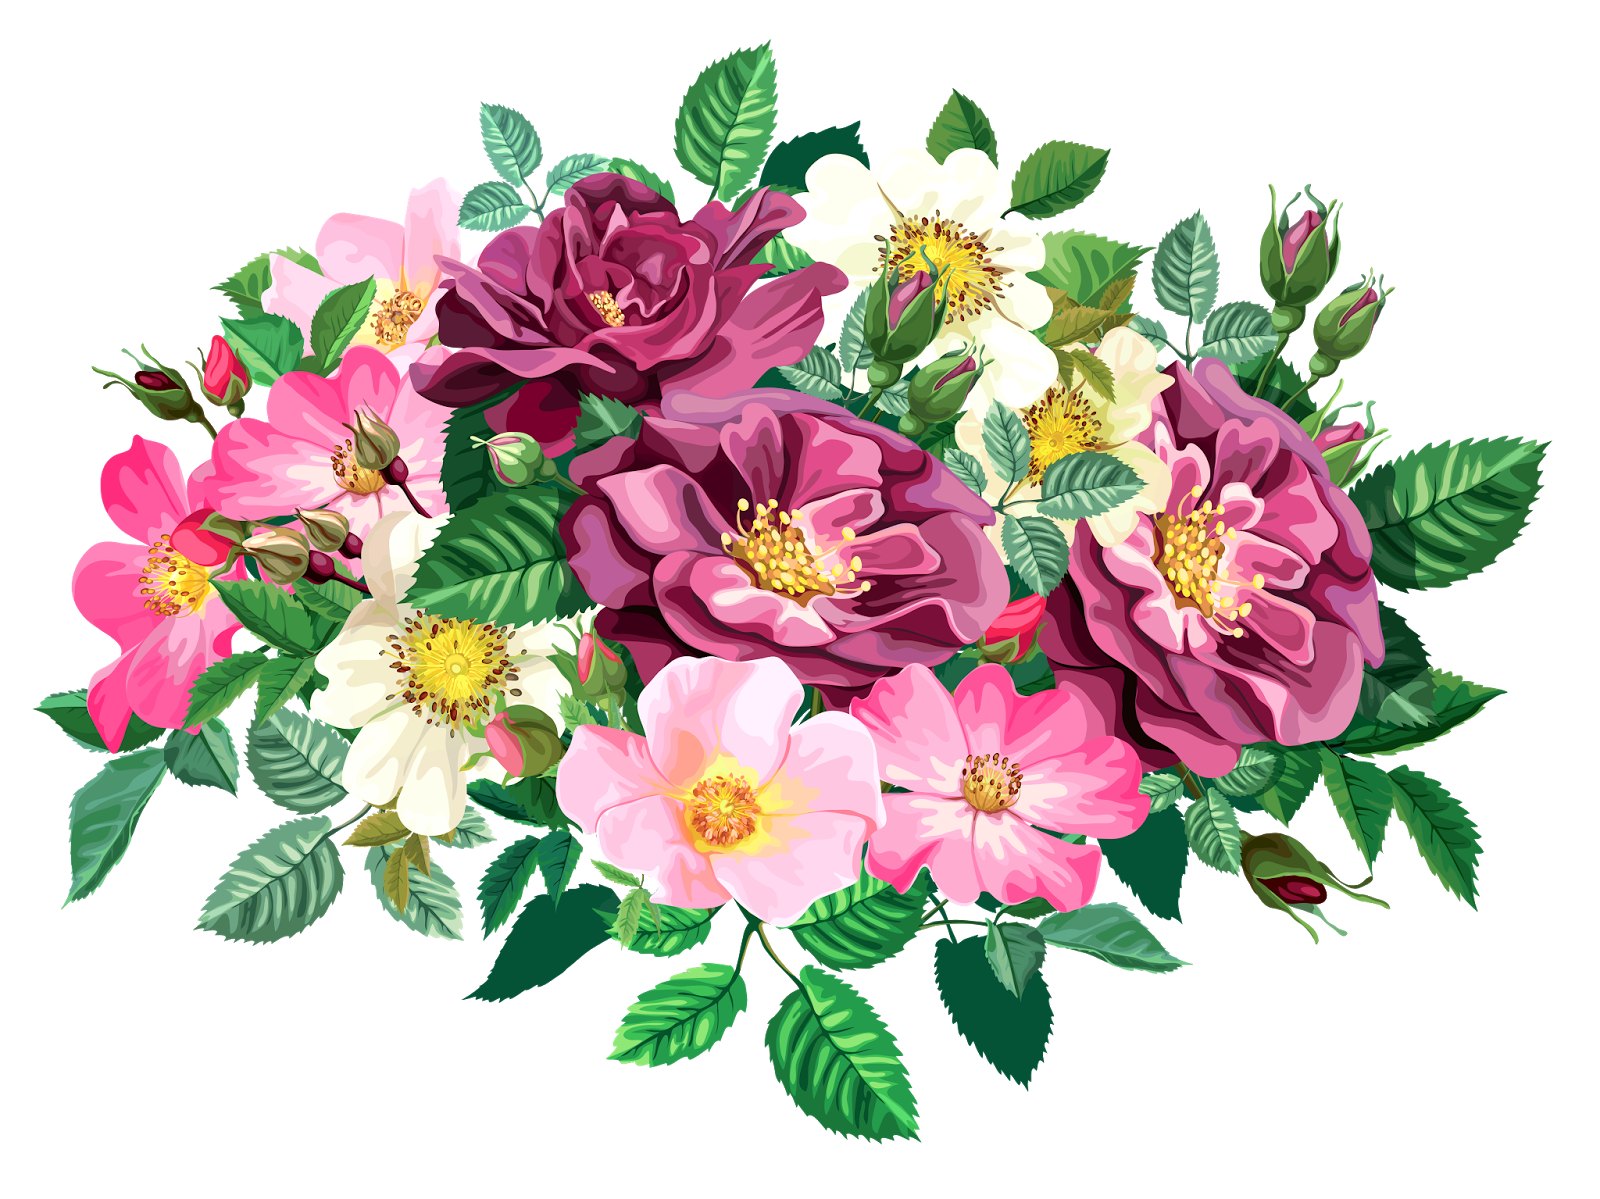 Flower collage clipart vector royalty free ROSE BOUQUET CLİPART TRANSPARENT | Blisse Design Studio vector royalty free